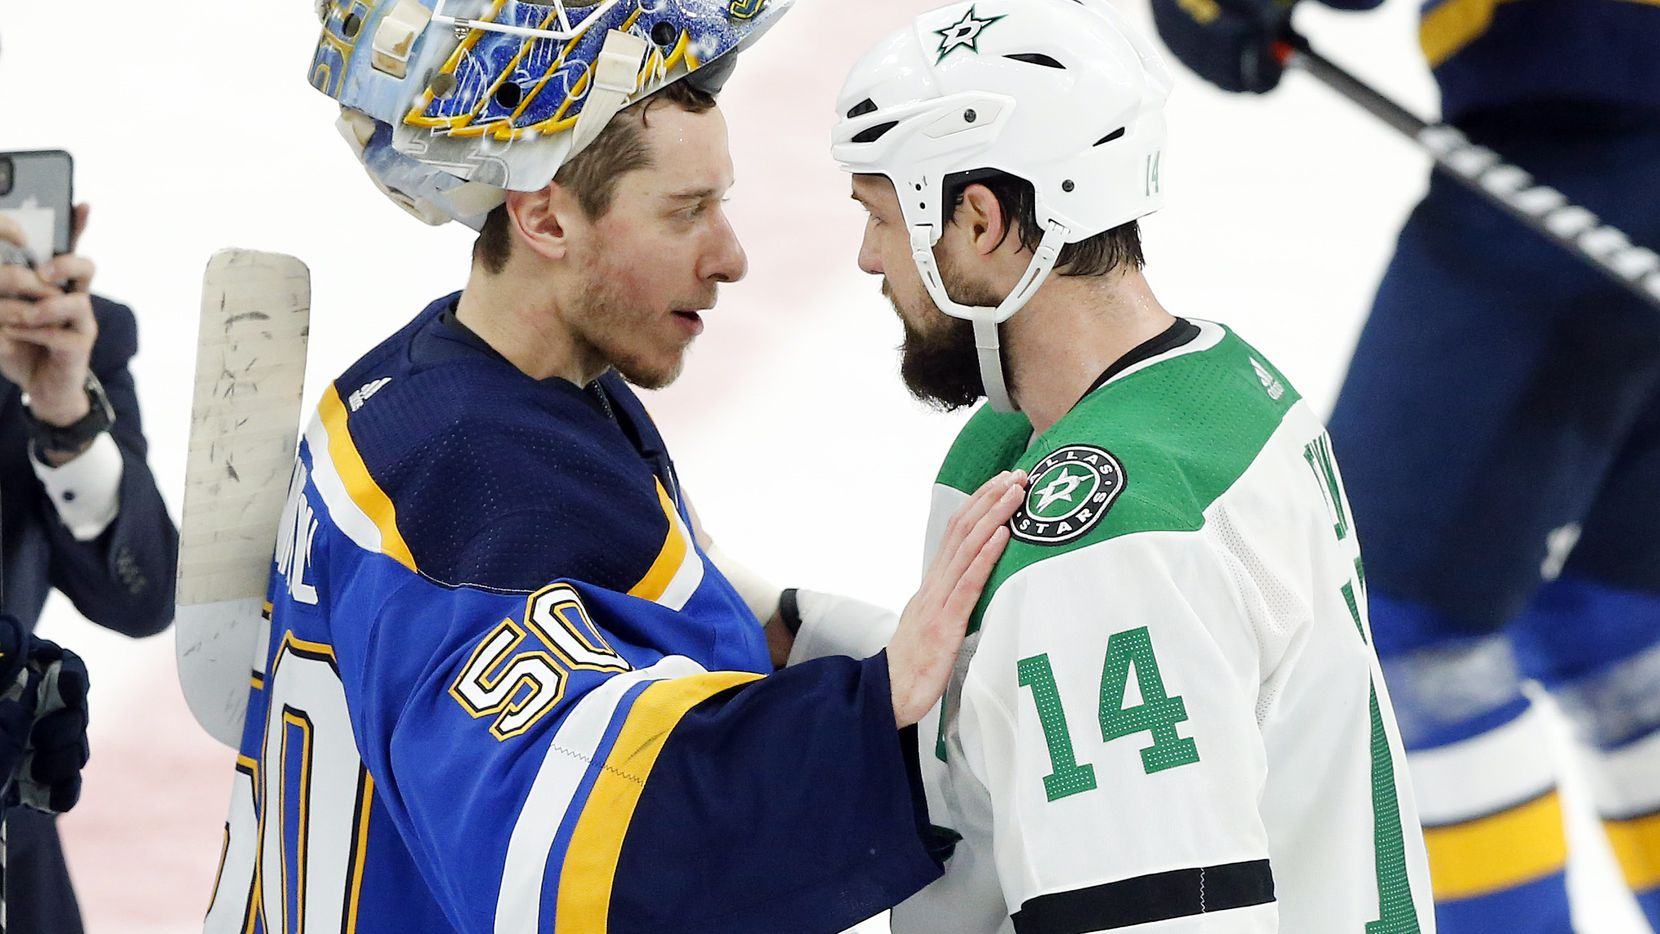 Dallas Stars left wing Jamie Benn (14) congratulates St. Louis Blues goaltender Jordan Binnington (50) on their win in the second overtime period at the Enterprise Center in St. Louis, Tuesday, May 7, 2019. The Dallas Stars lost, 2-1. The teams were playing in the Western Conference Second Round Game 7 of the 2019 NHL Stanley Cup Playoffs. (Tom Fox/The Dallas Morning News)